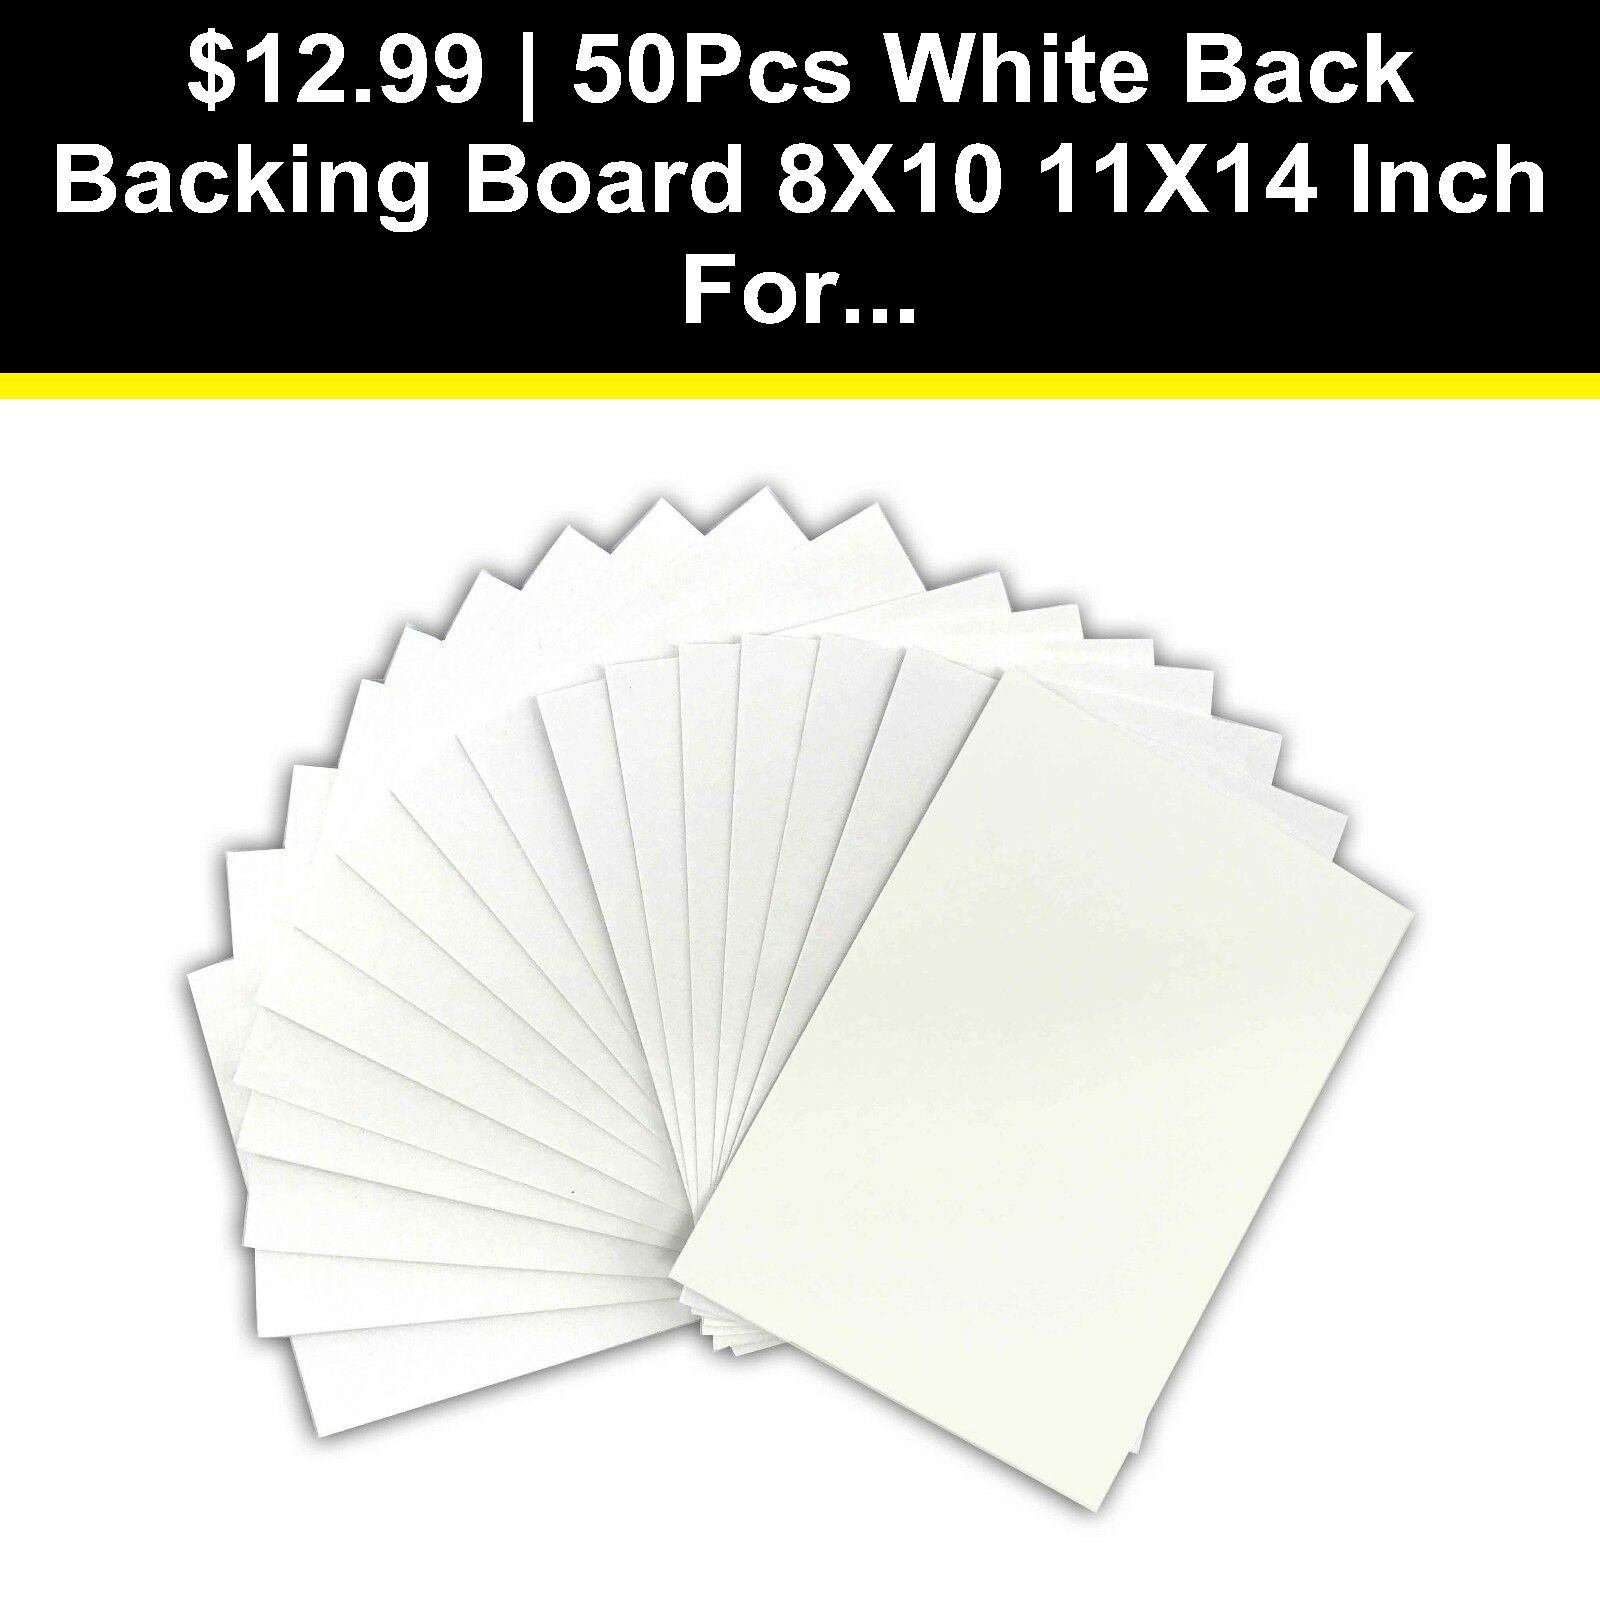 50pcs White Back Backing Board 8x10 11x14 Inch For Art Picture Photo Frame Usa Frame Usa Art Pictures Photo Frame